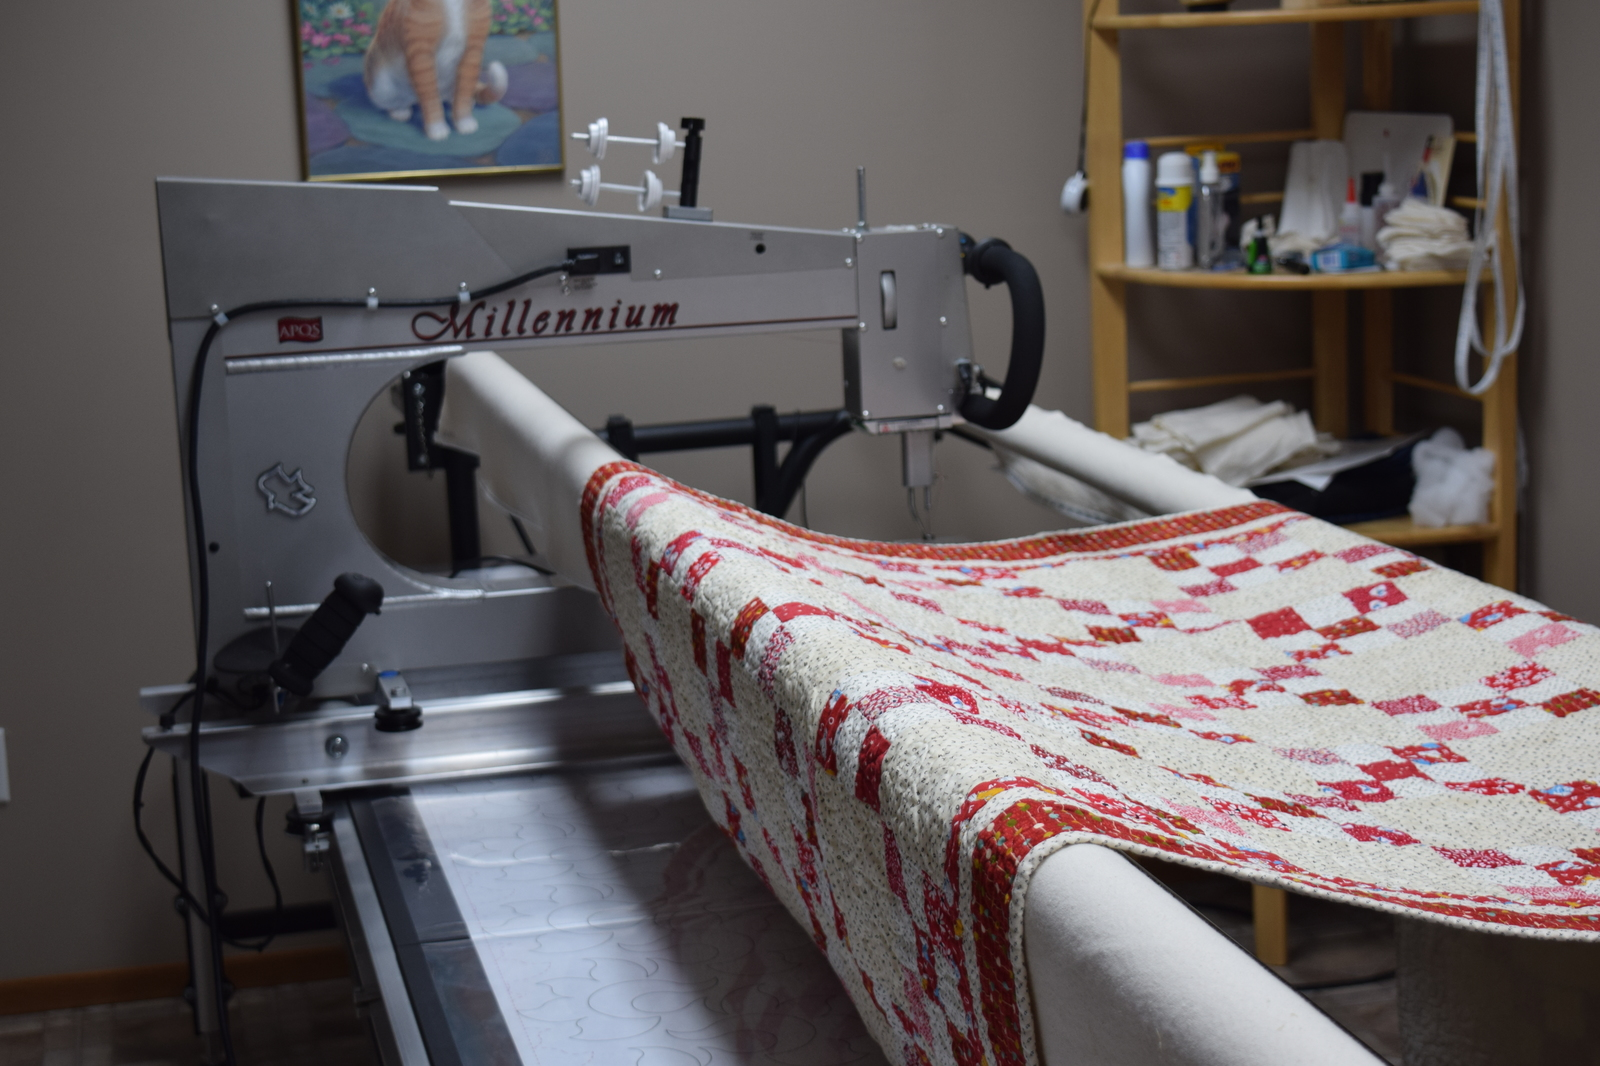 2009 Millenium for sale - SOLD (5-8-17) - For Sale - Used Quilting ... : quilting machines used - Adamdwight.com